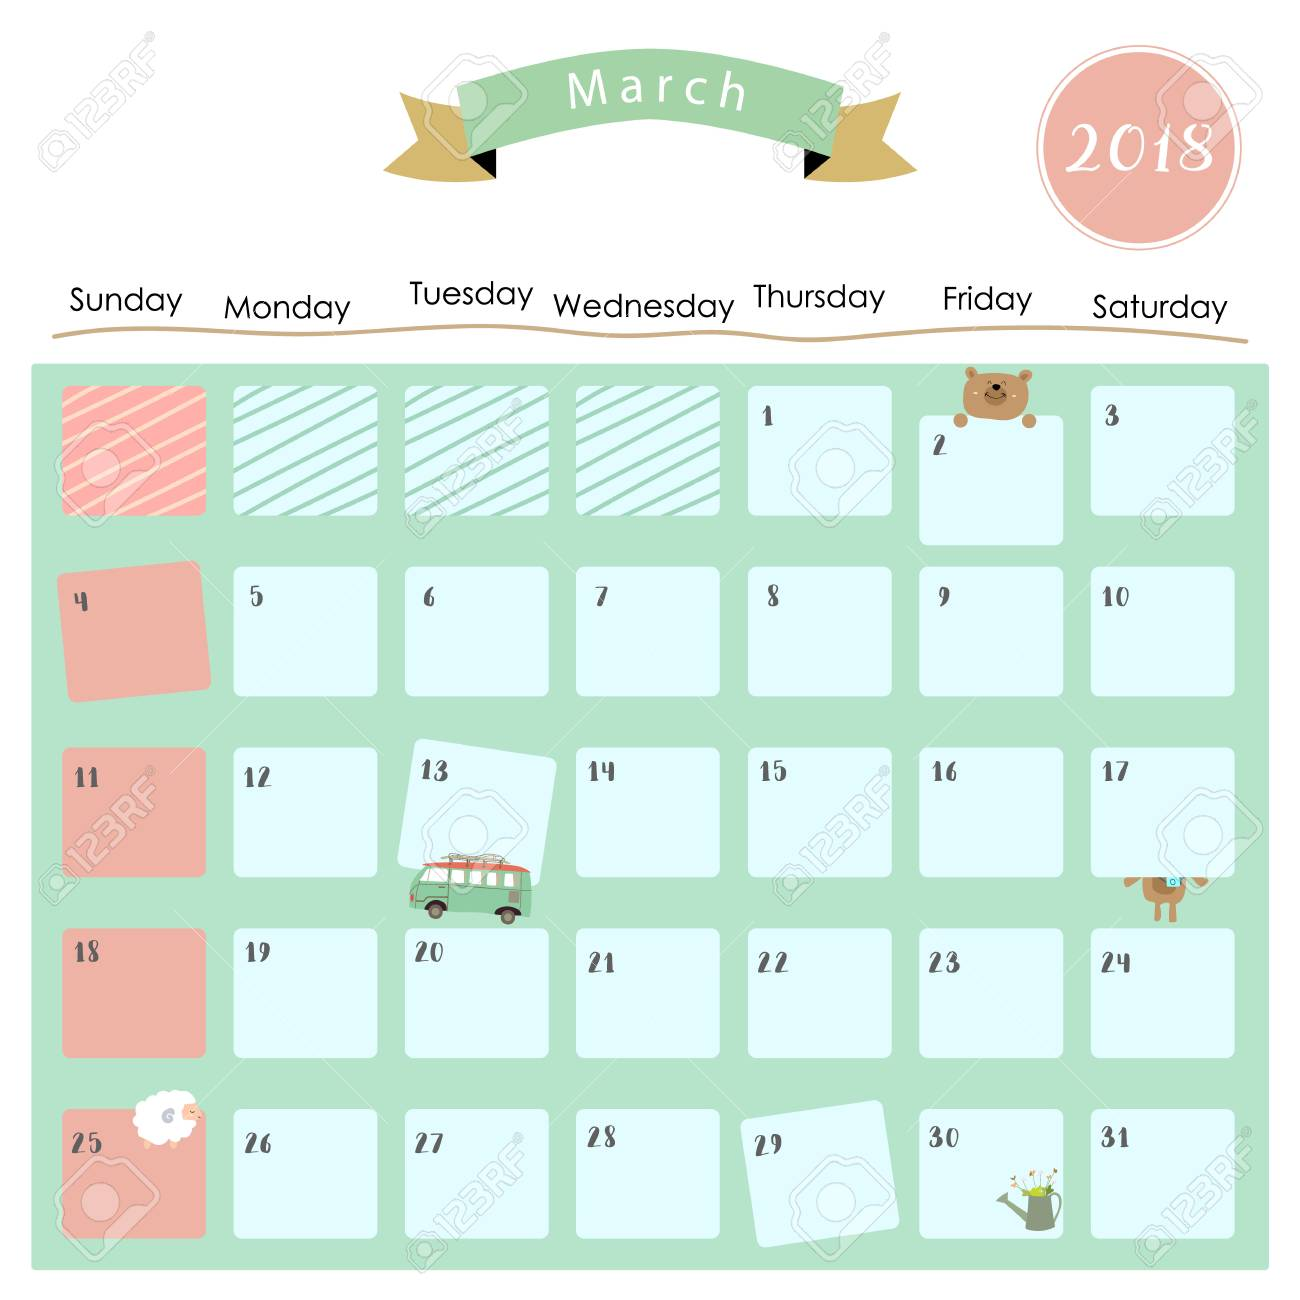 Colorful Cute March 2018 Calendar With Sheep,bear And Van Royalty